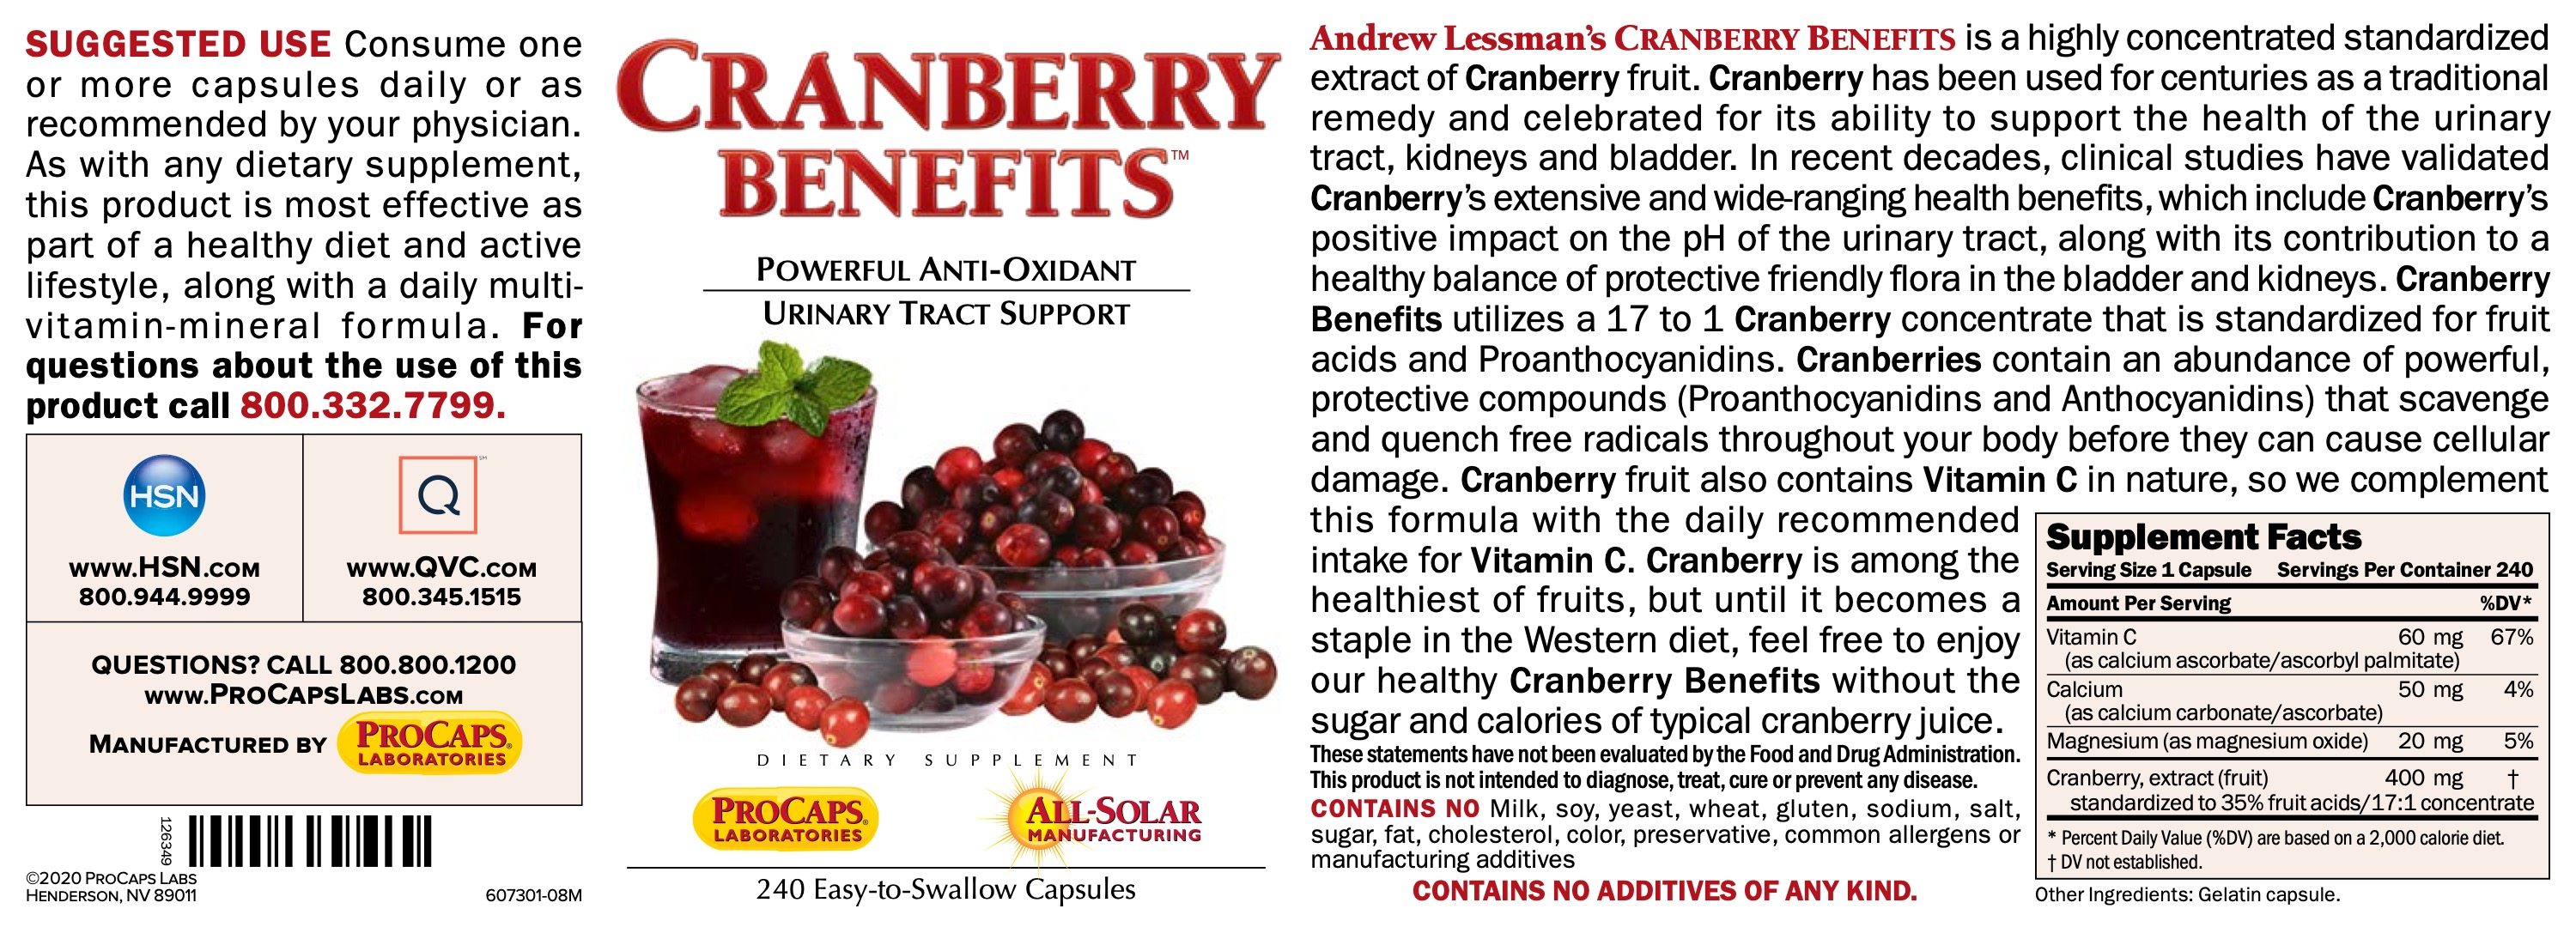 Cranberry-Benefits-Capsules-Anti-oxidants